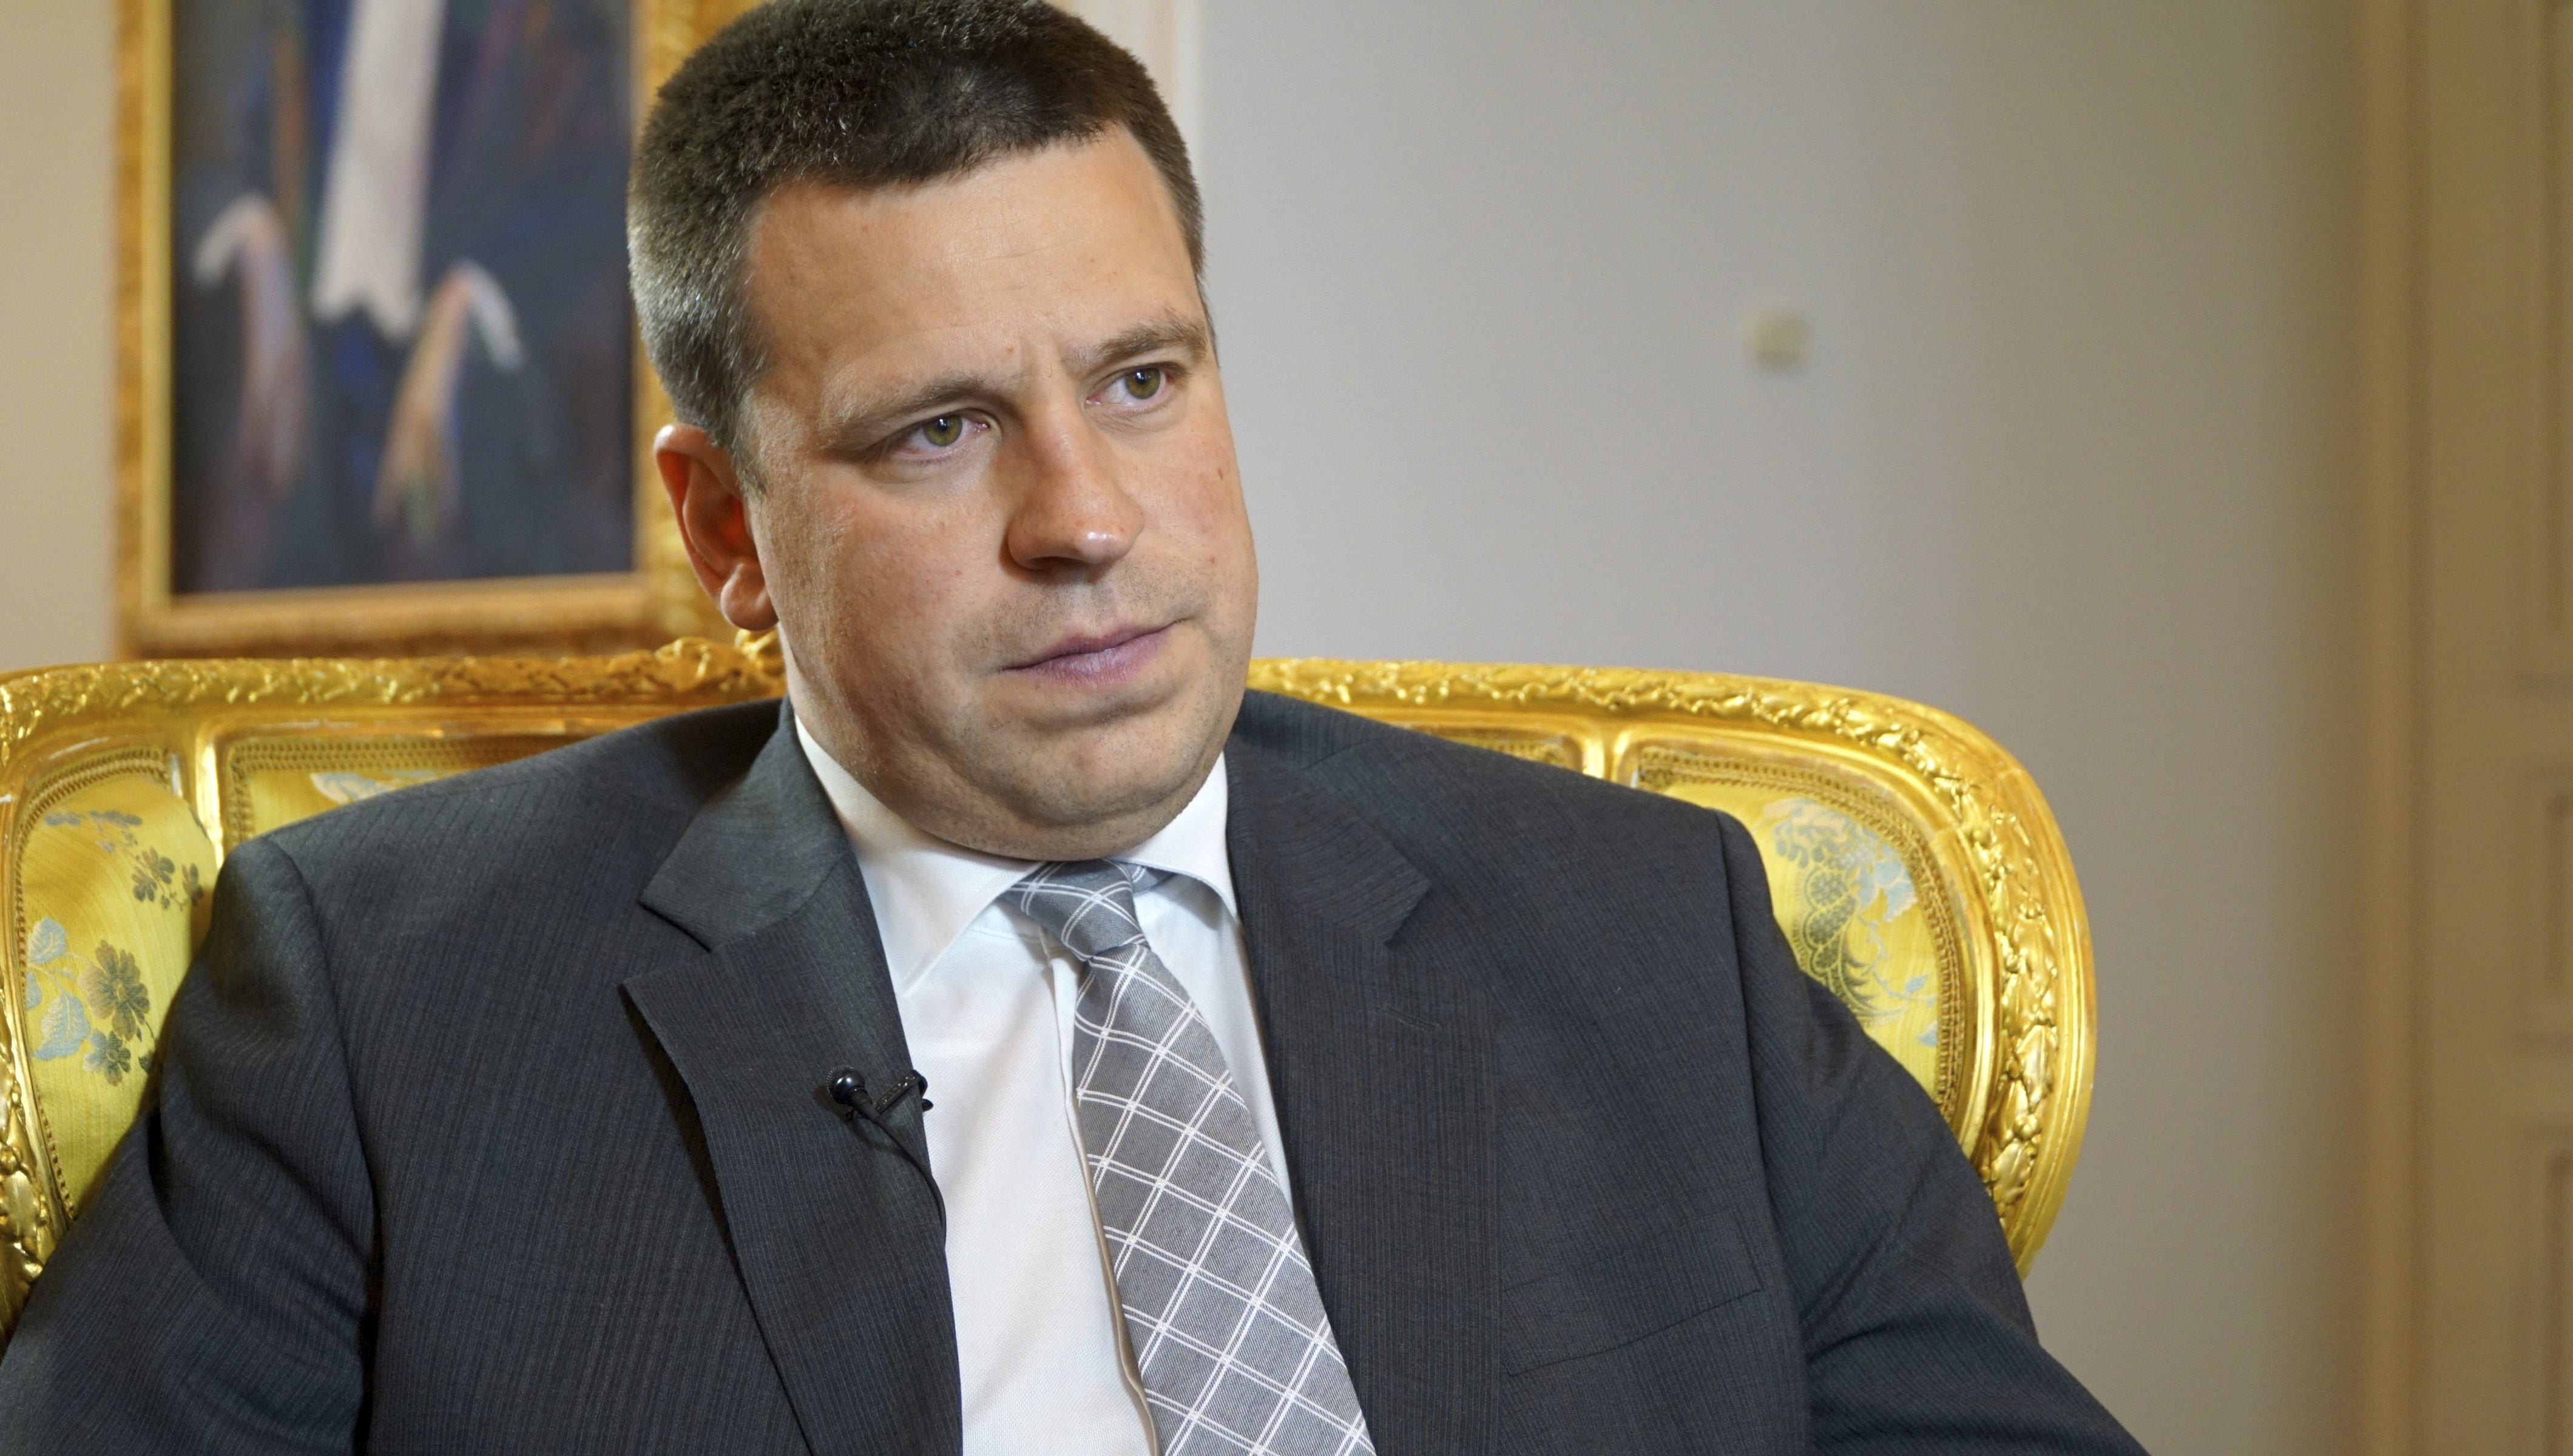 Estonian Prime Minister Juri Ratas answers questions by The Associated Press during an interview in Estonia's capital,Tallinn, June 2, 2017.